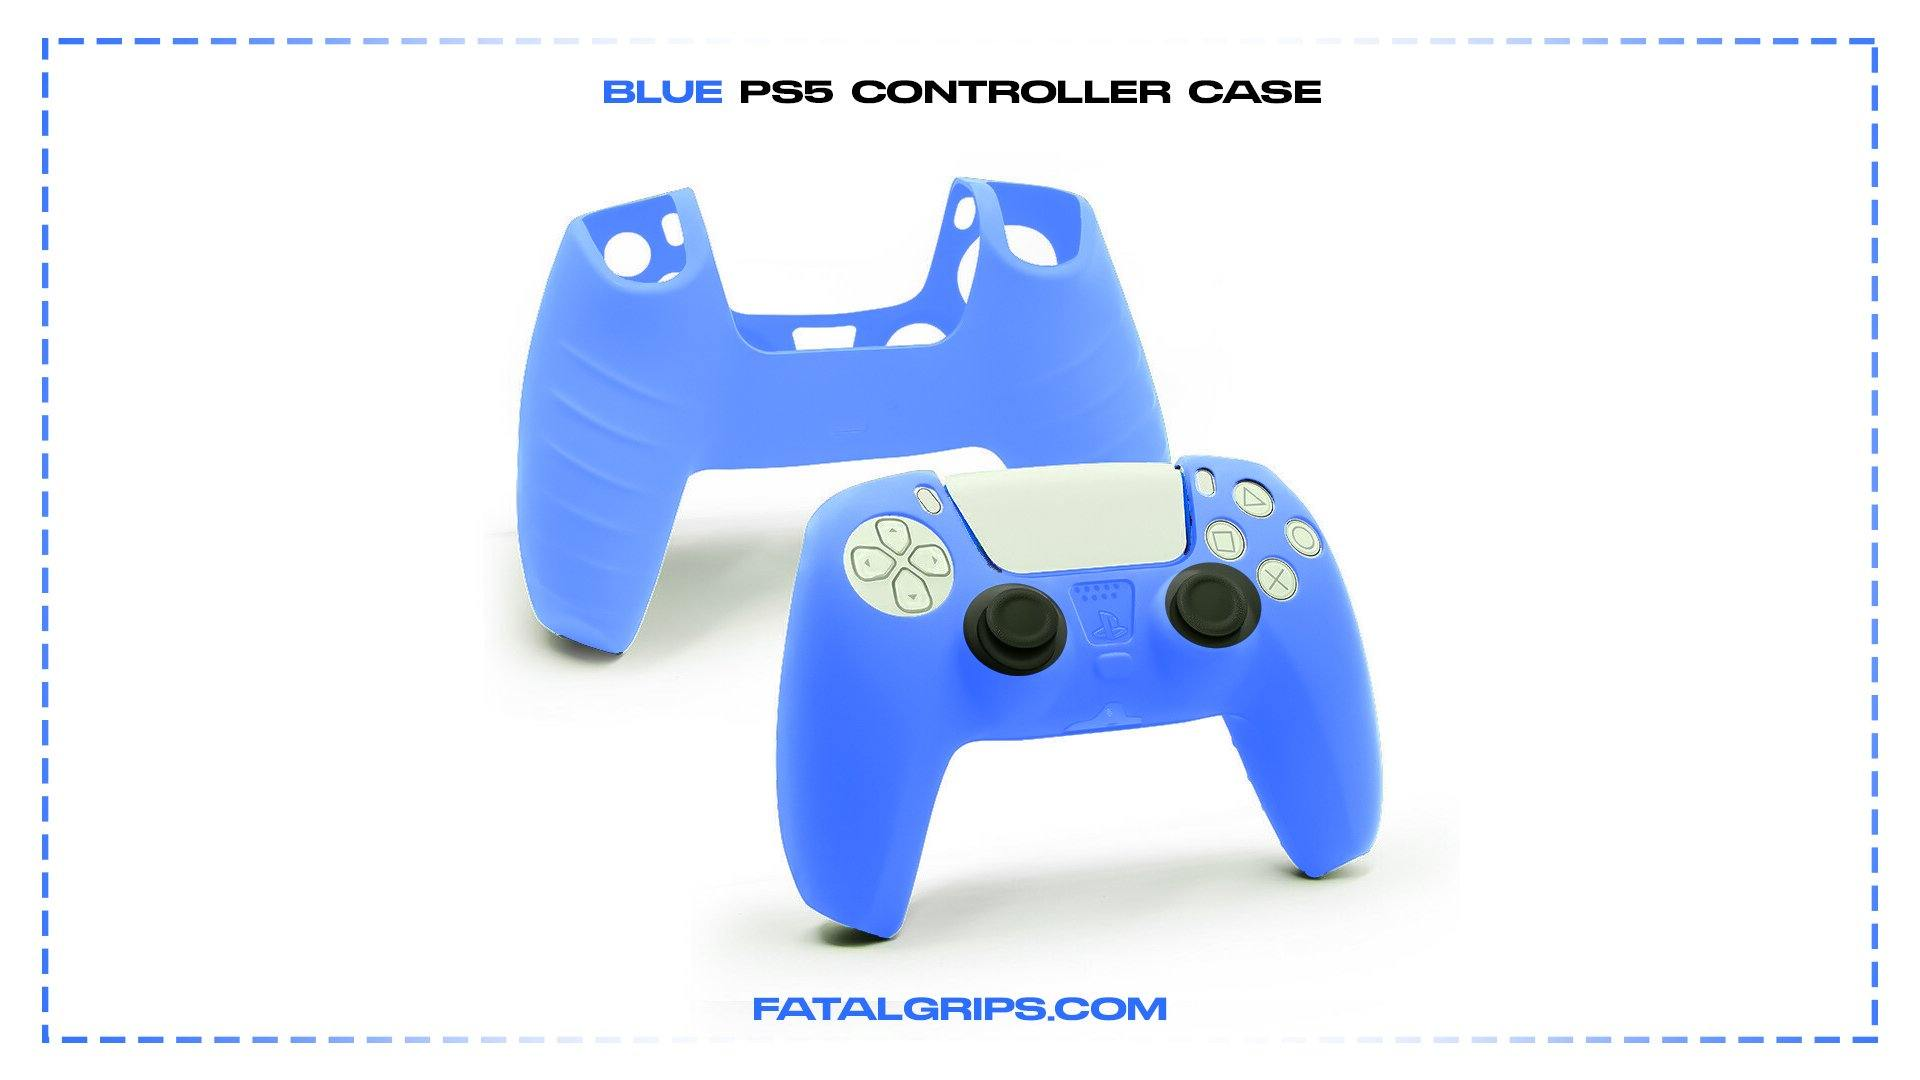 Blue PS5 Controller Case